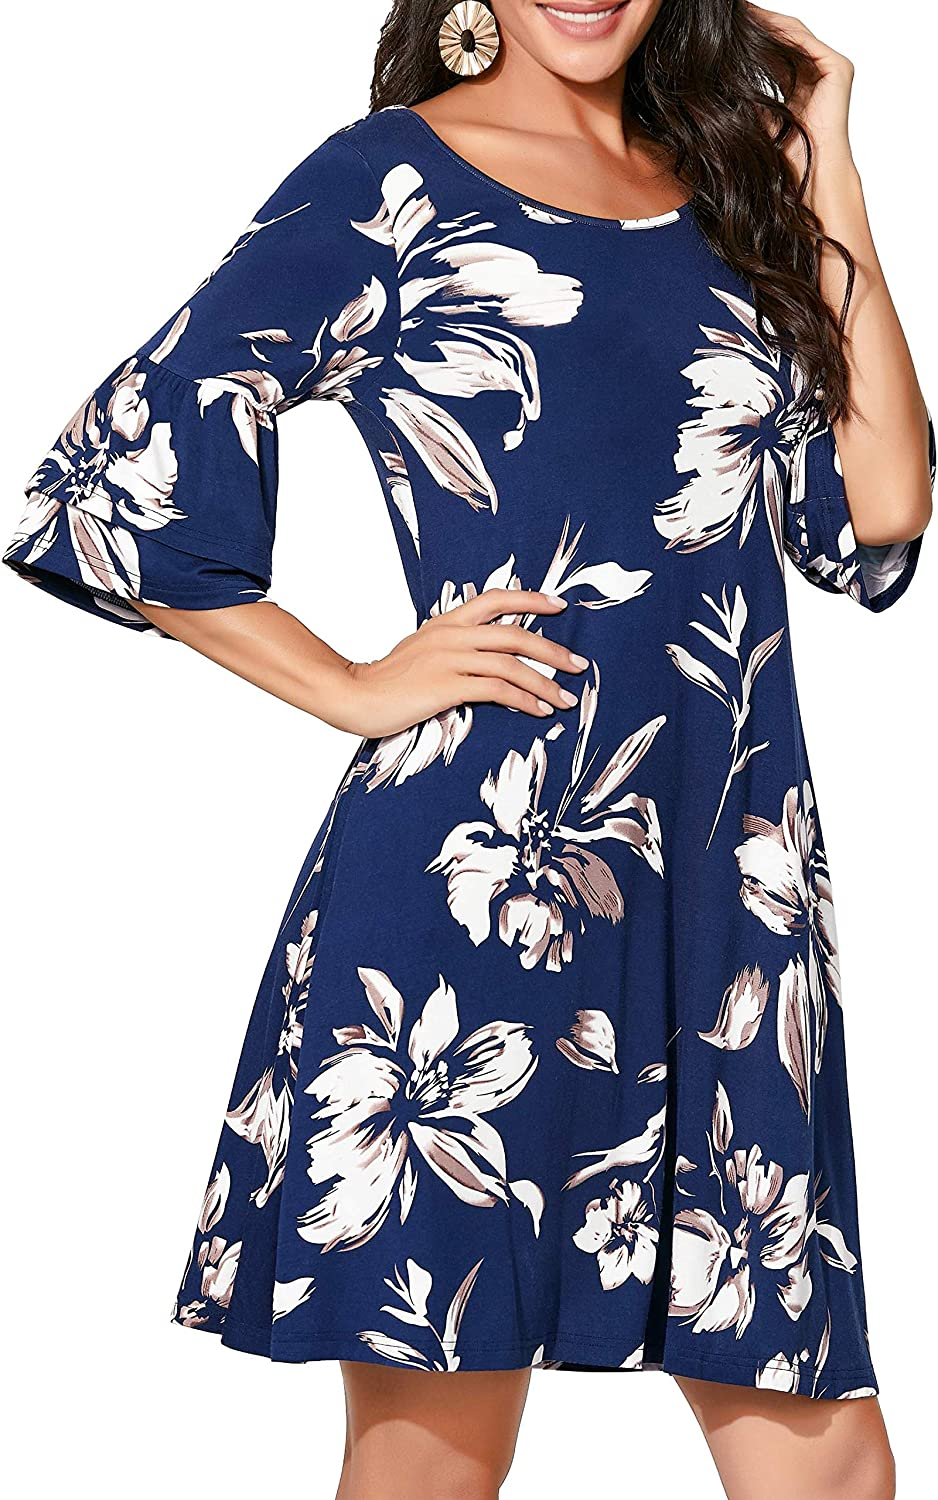 IUGA Summer Dresses for Women Loose Fit Comfy Short Sleeves Women Dresses with Pockets Fall T-Shirt Casual Dress